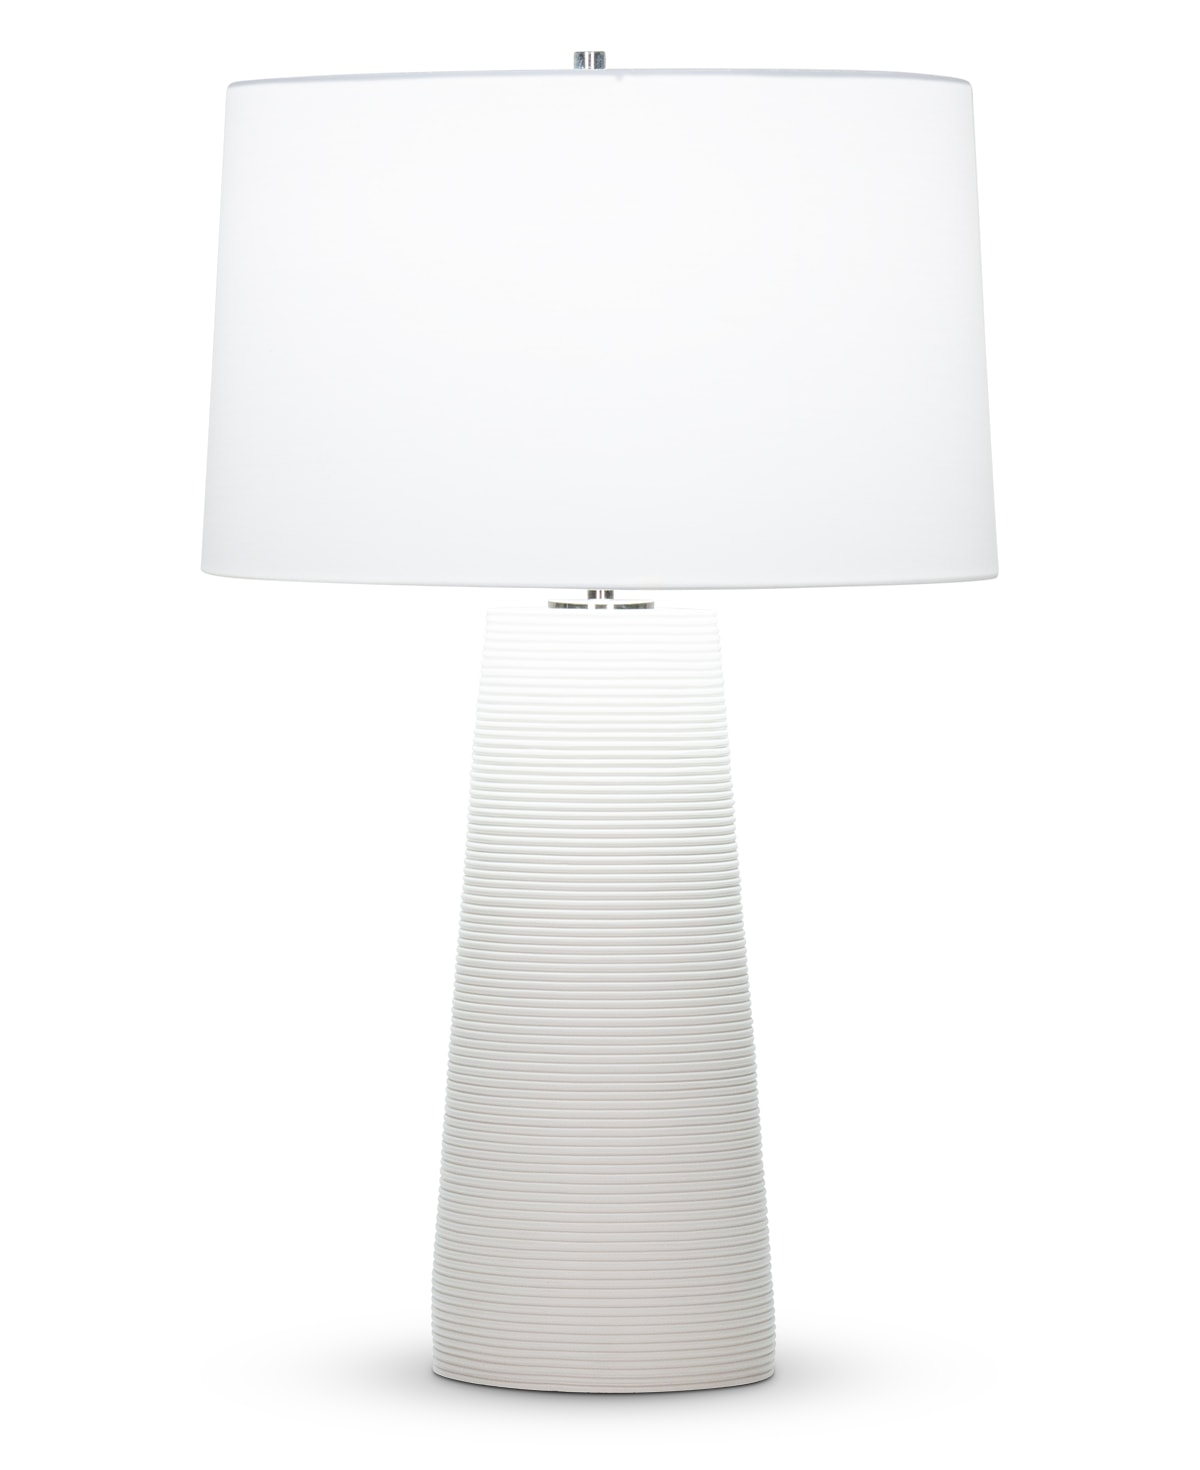 FlowDecor Omar Table Lamp in resin with off-white matte finish and finely ribbed surface and off-white cotton tapered drum shade (# 4517)